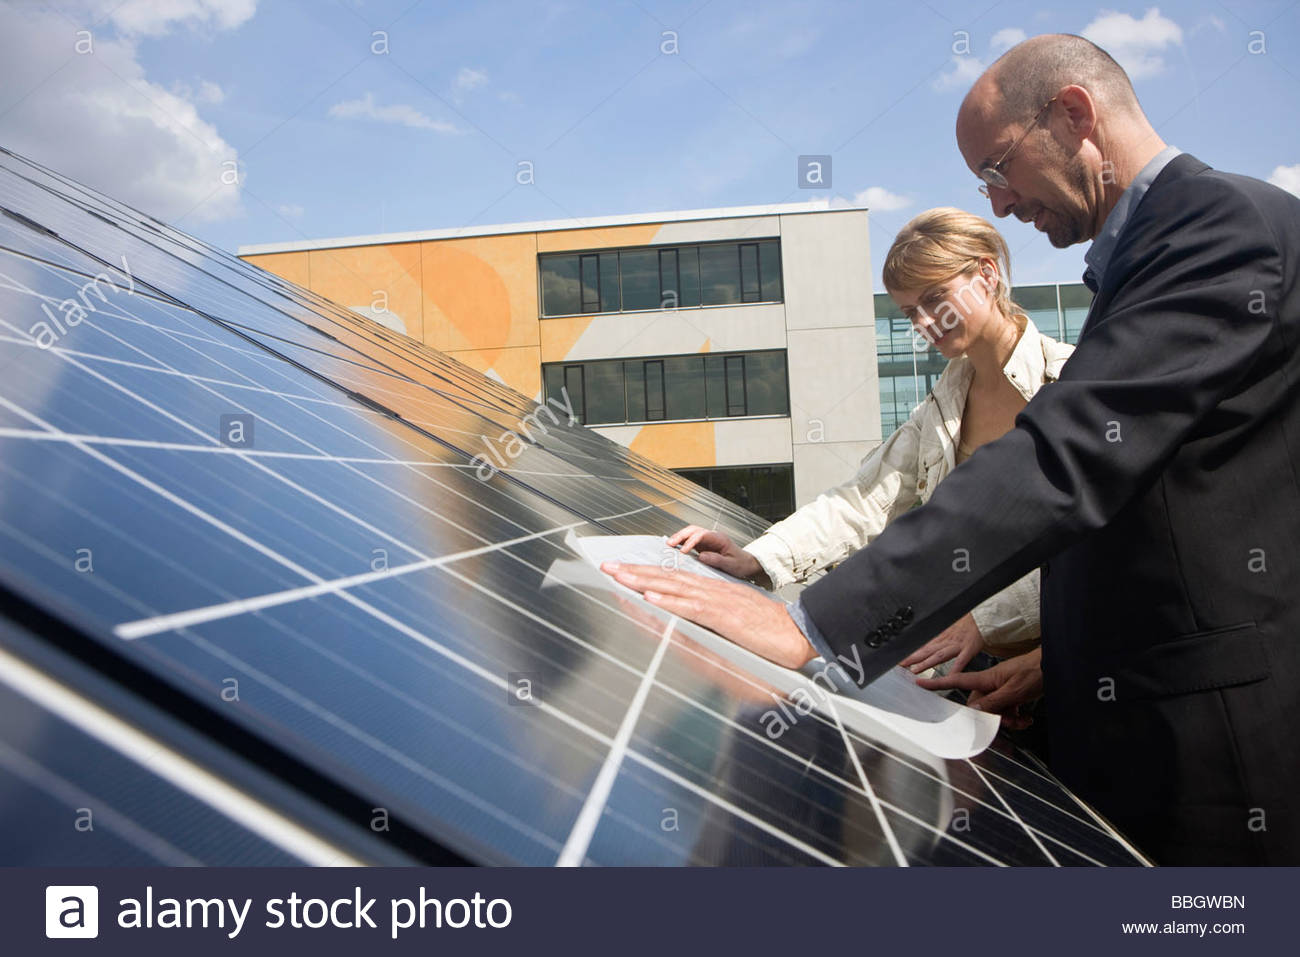 Two mature adults reading plans laid on solar panels Munich, Bavaria, Germany Stock Photo